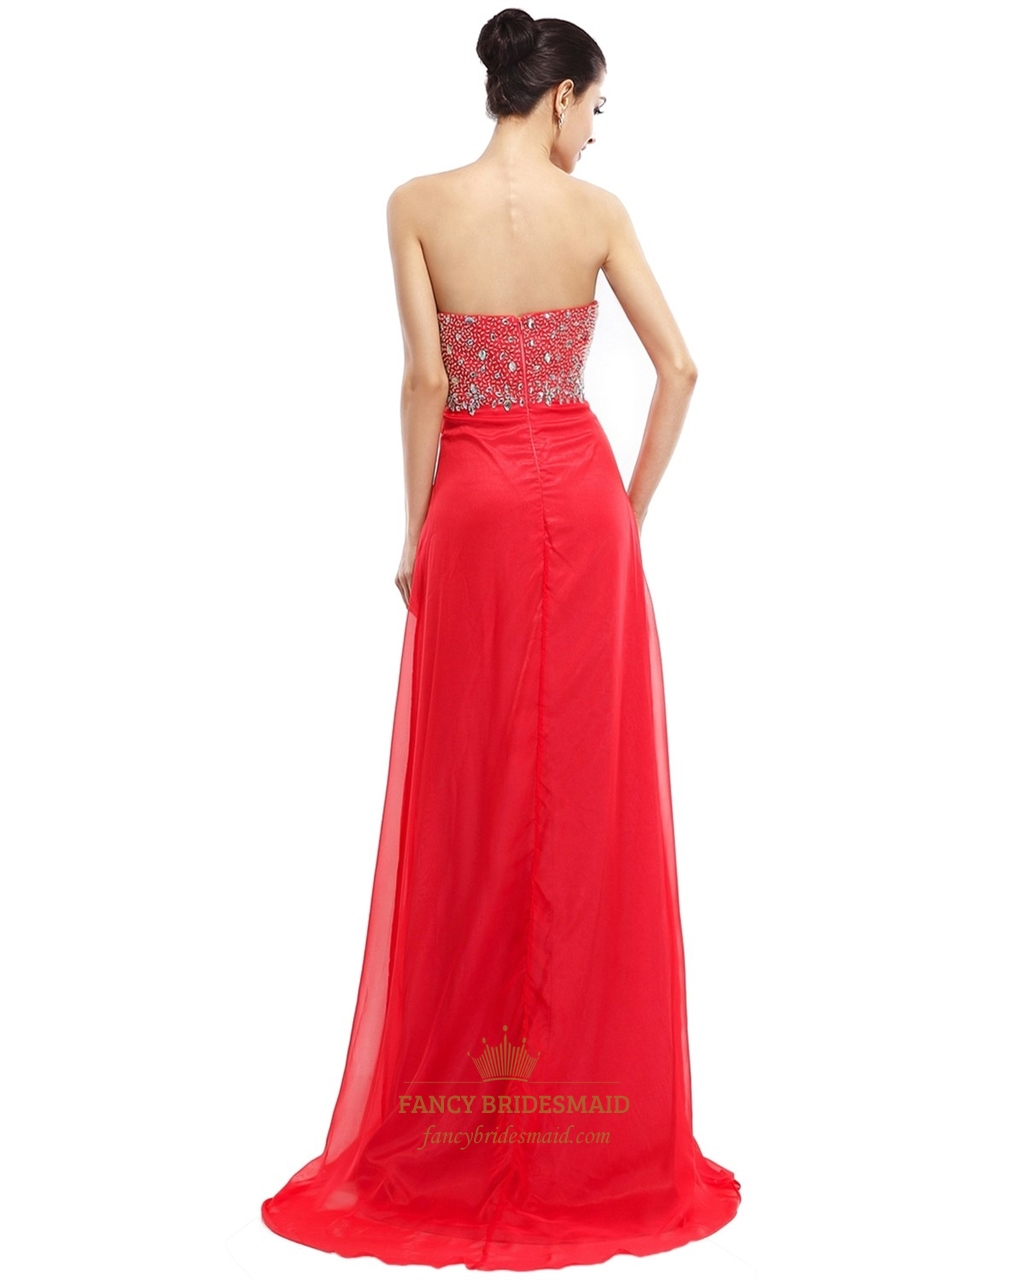 Red Short Strapless Asymmetrical Bridesmaid Dresses With Flower Detail Fanc